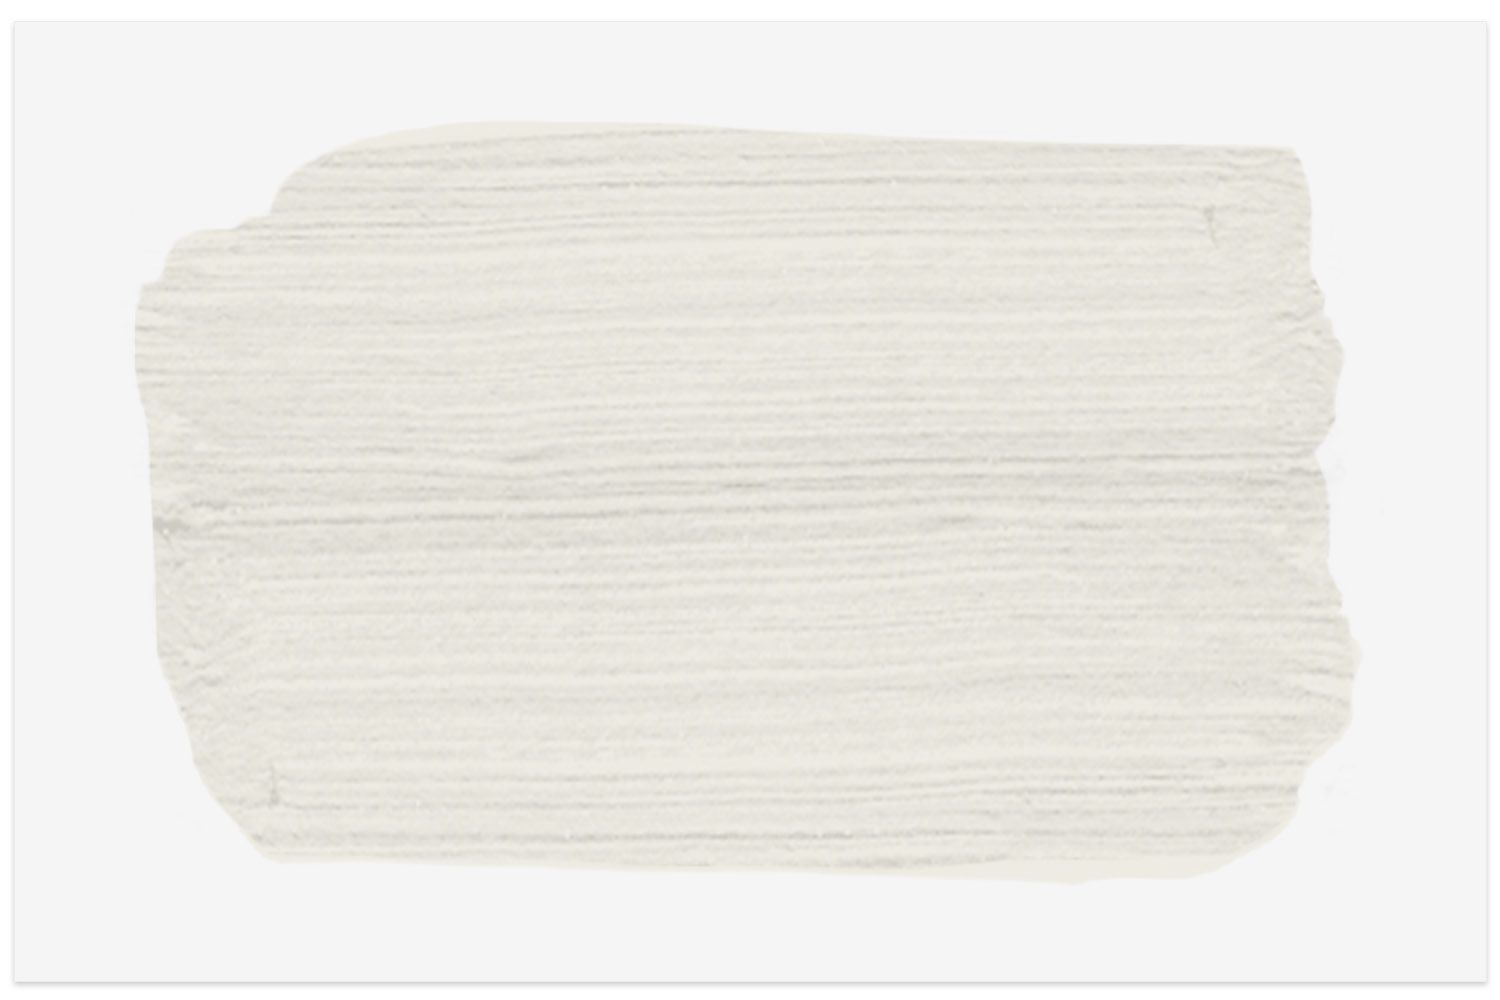 Silky White PPU7-12 paint swatch from Behr